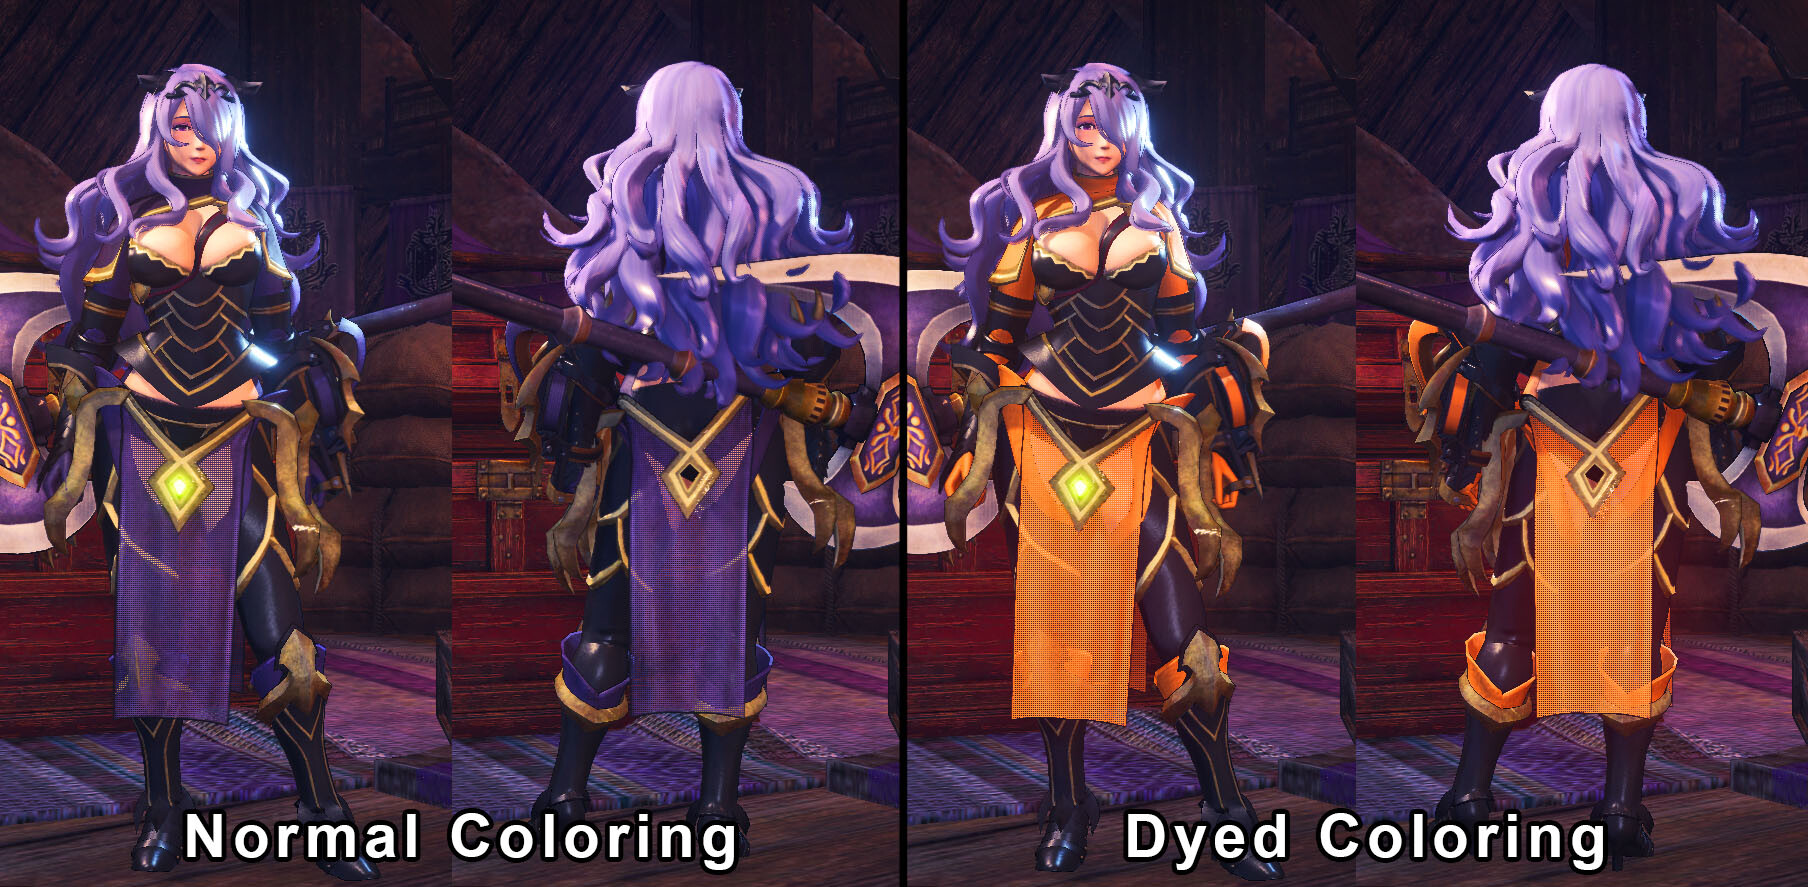 Showing off dye capability for further customization.